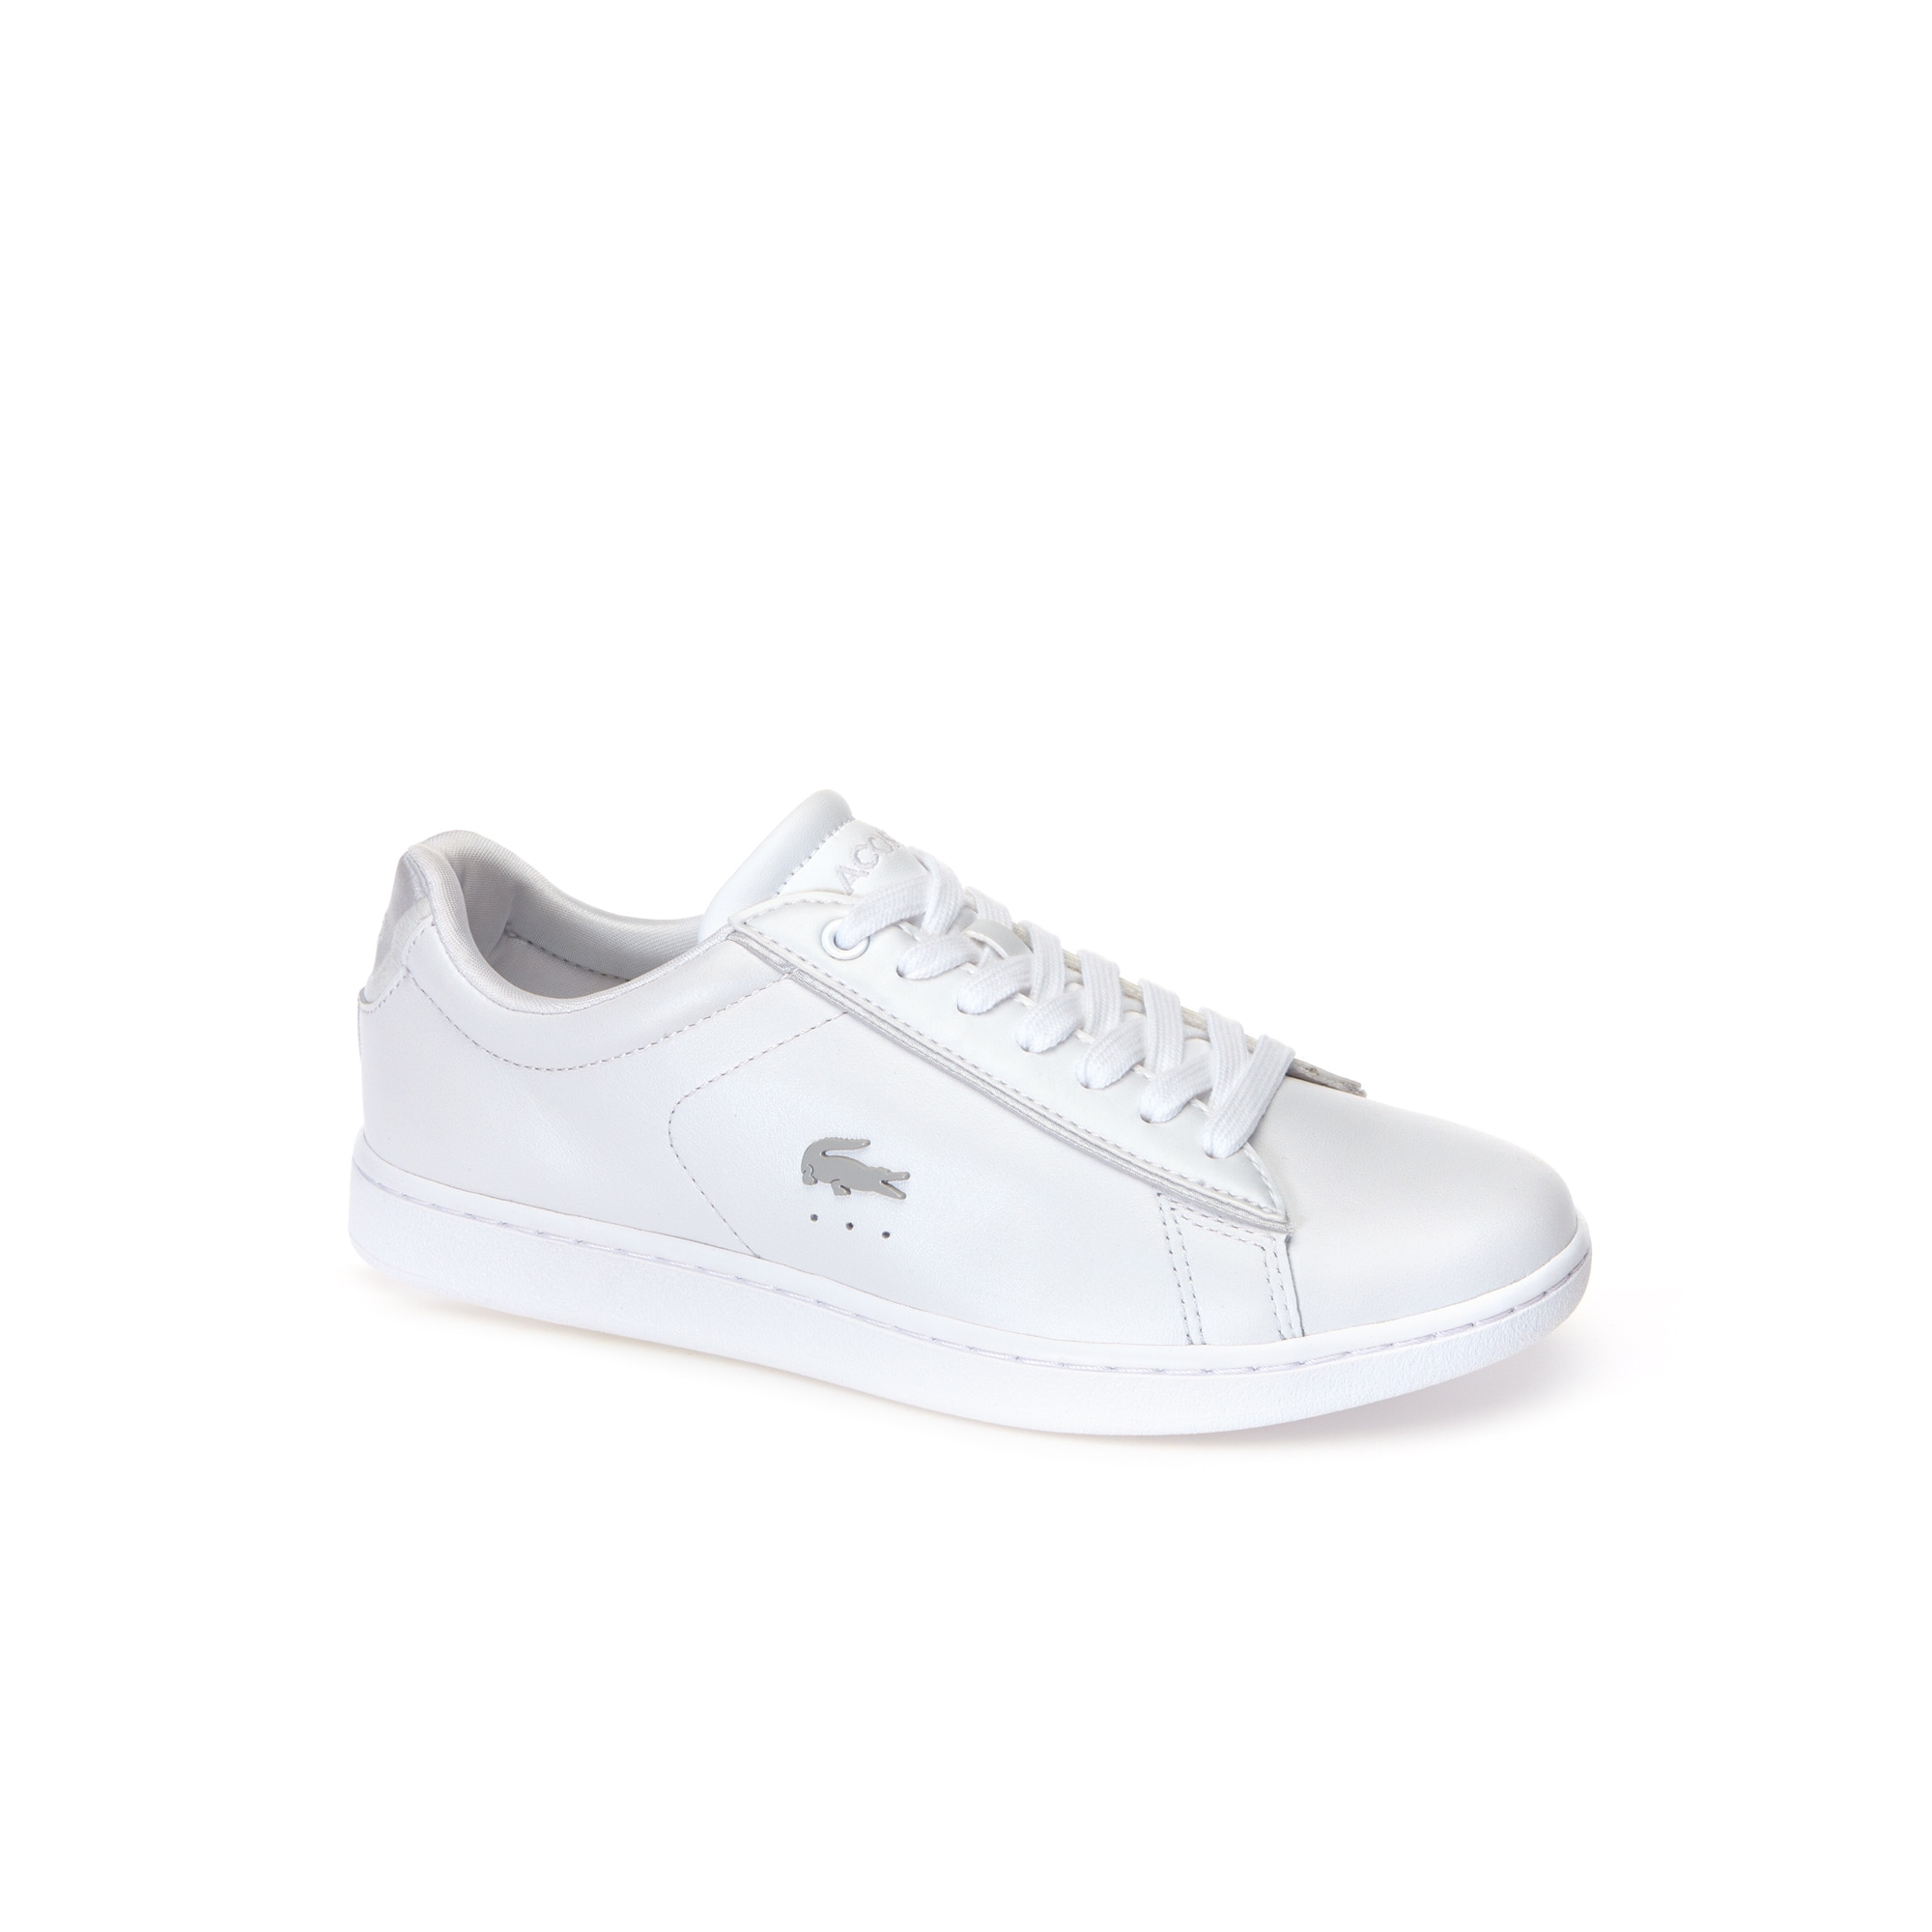 Sneakers Carnaby Evo in pelle madreperlata